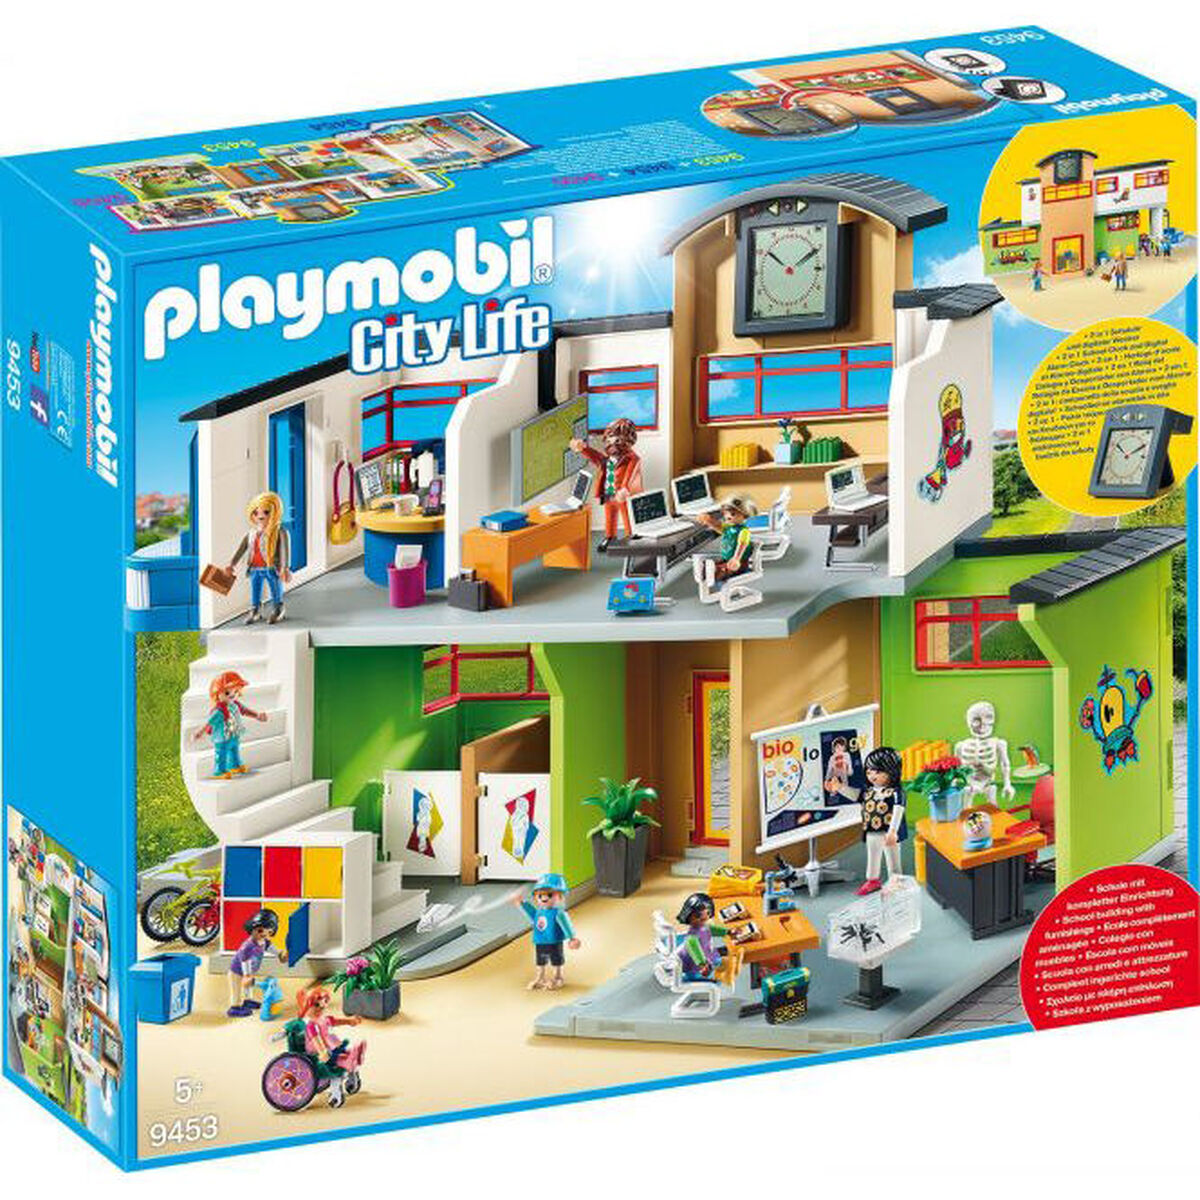 playmobil city life gro e schule mit einrichtung 9453. Black Bedroom Furniture Sets. Home Design Ideas